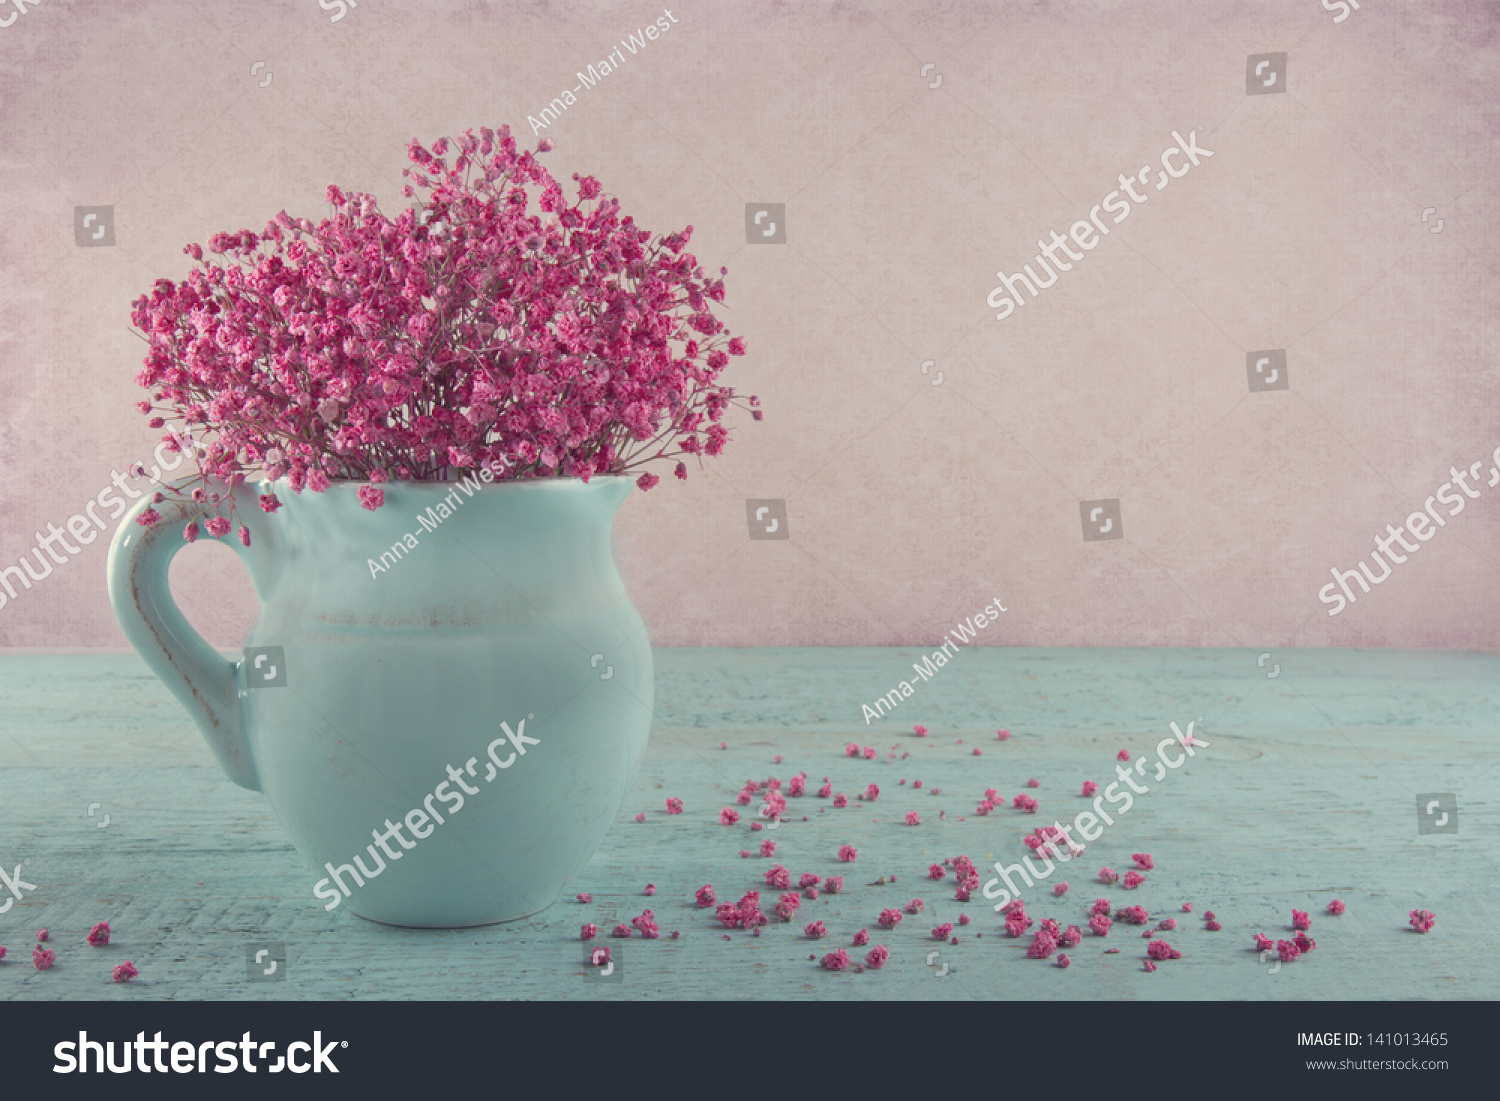 Pink Dried Babys Breath Flowers Blue Stock Photo Edit Now 141013465